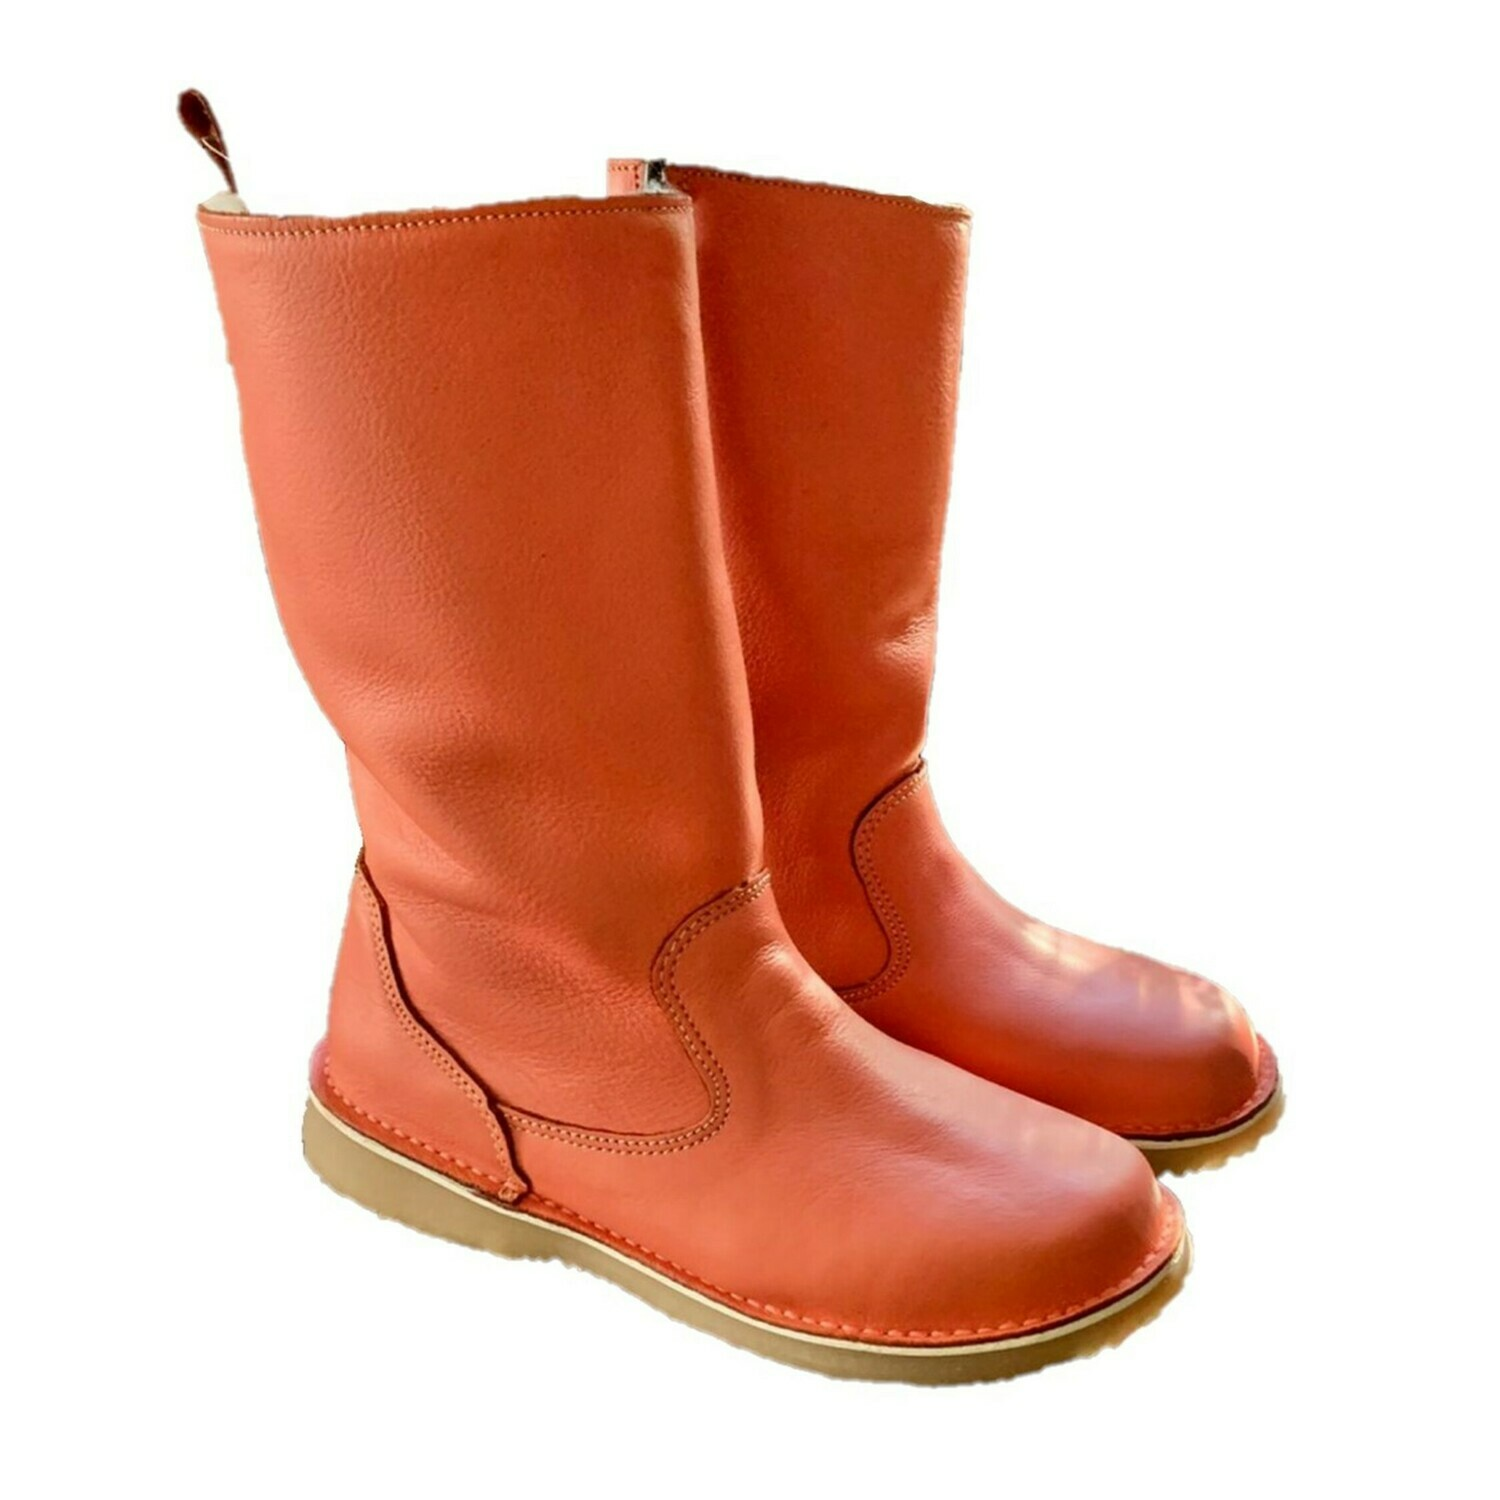 Eskimo Coral wool-lined ladies leather boot